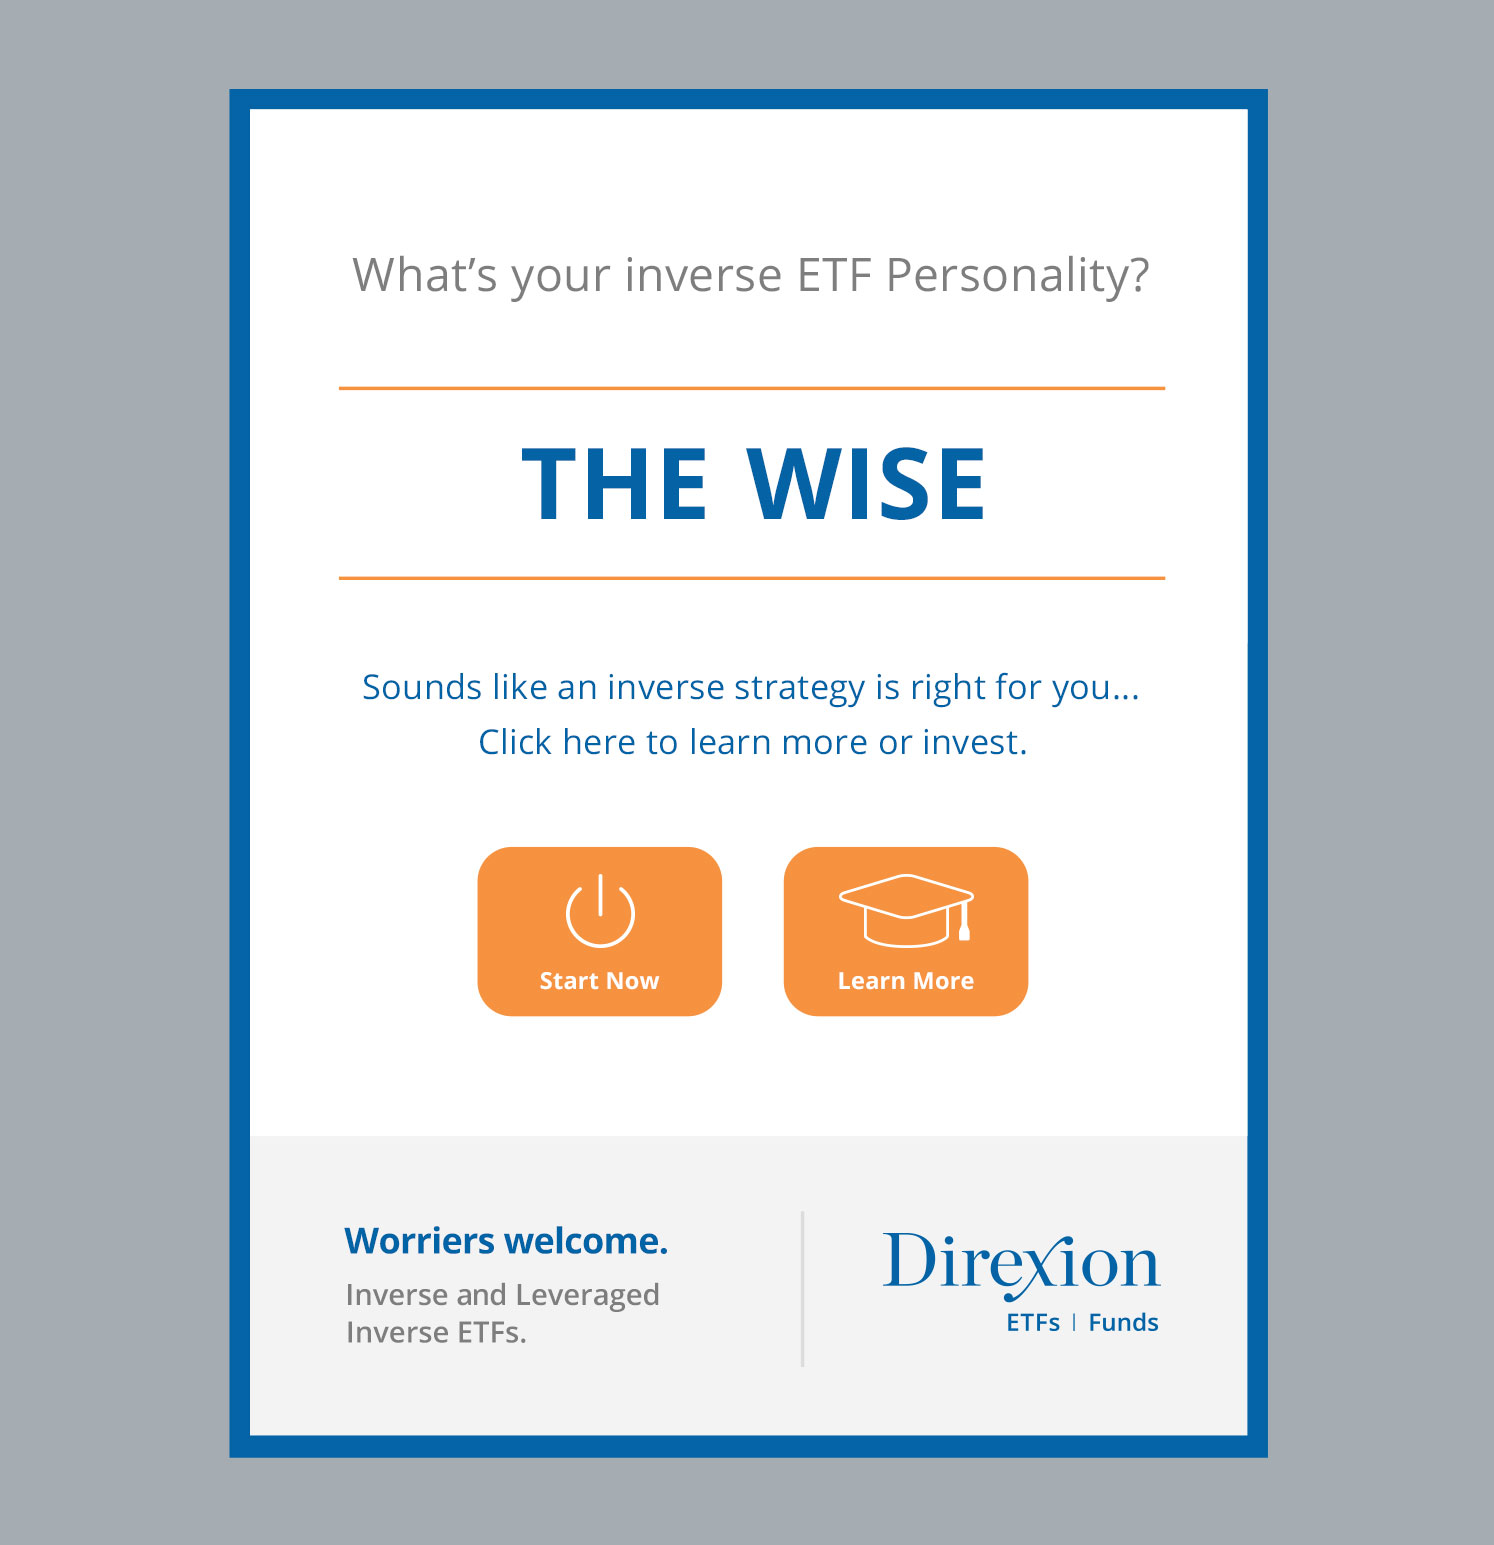 Direxion_Personality_Test_07a